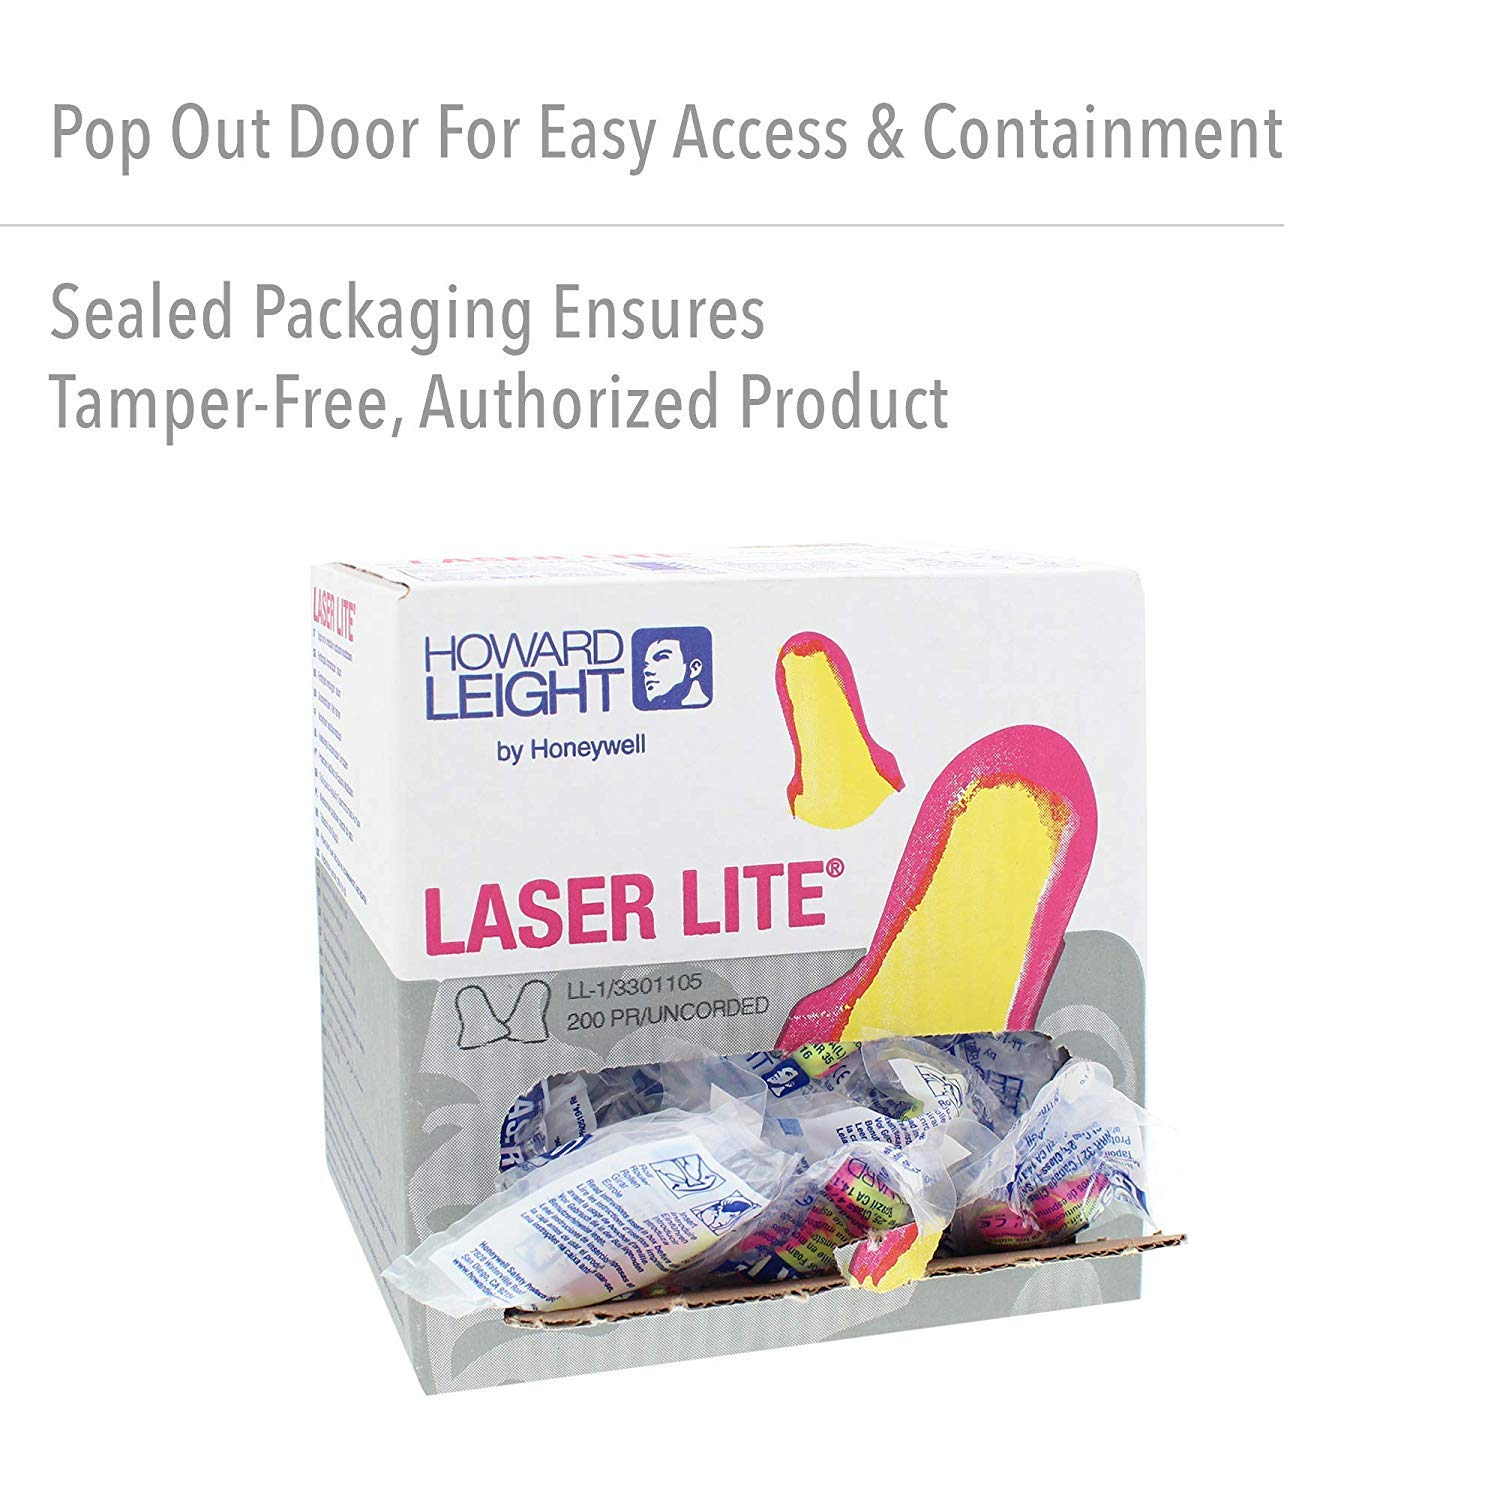 Howard Leight by Honeywell Laser Lite High Visibility Disposable Foam Earplugs, (LL-1), Pink/Yellow - 3301105 (400-pairs)